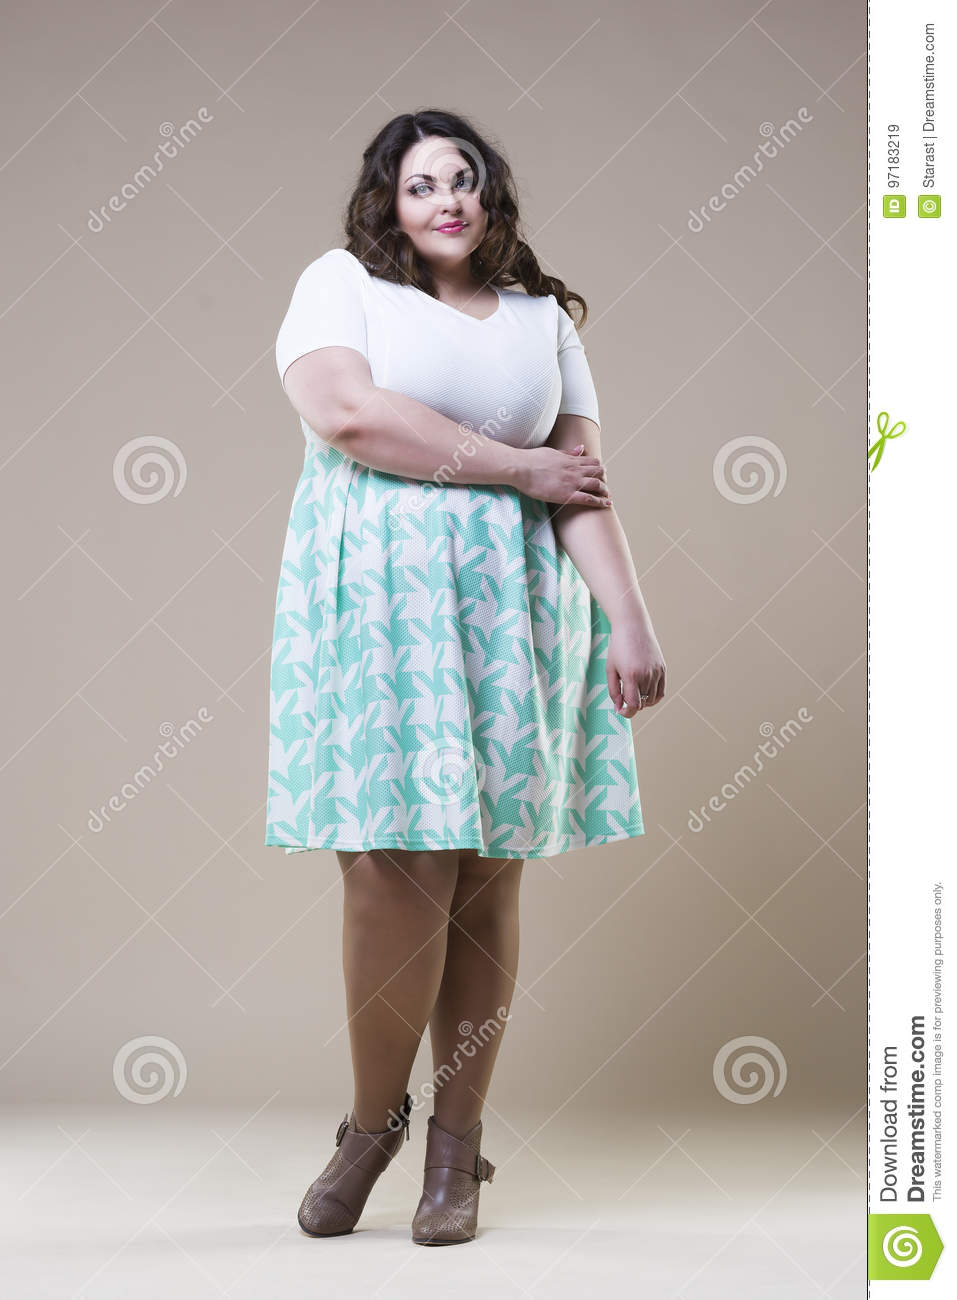 Plus Size Fashion Model In Casual Clothes Fat Woman On Beige Studio Background Overweight Female Body Stock Image Image Of Casual Beautiful 97183219